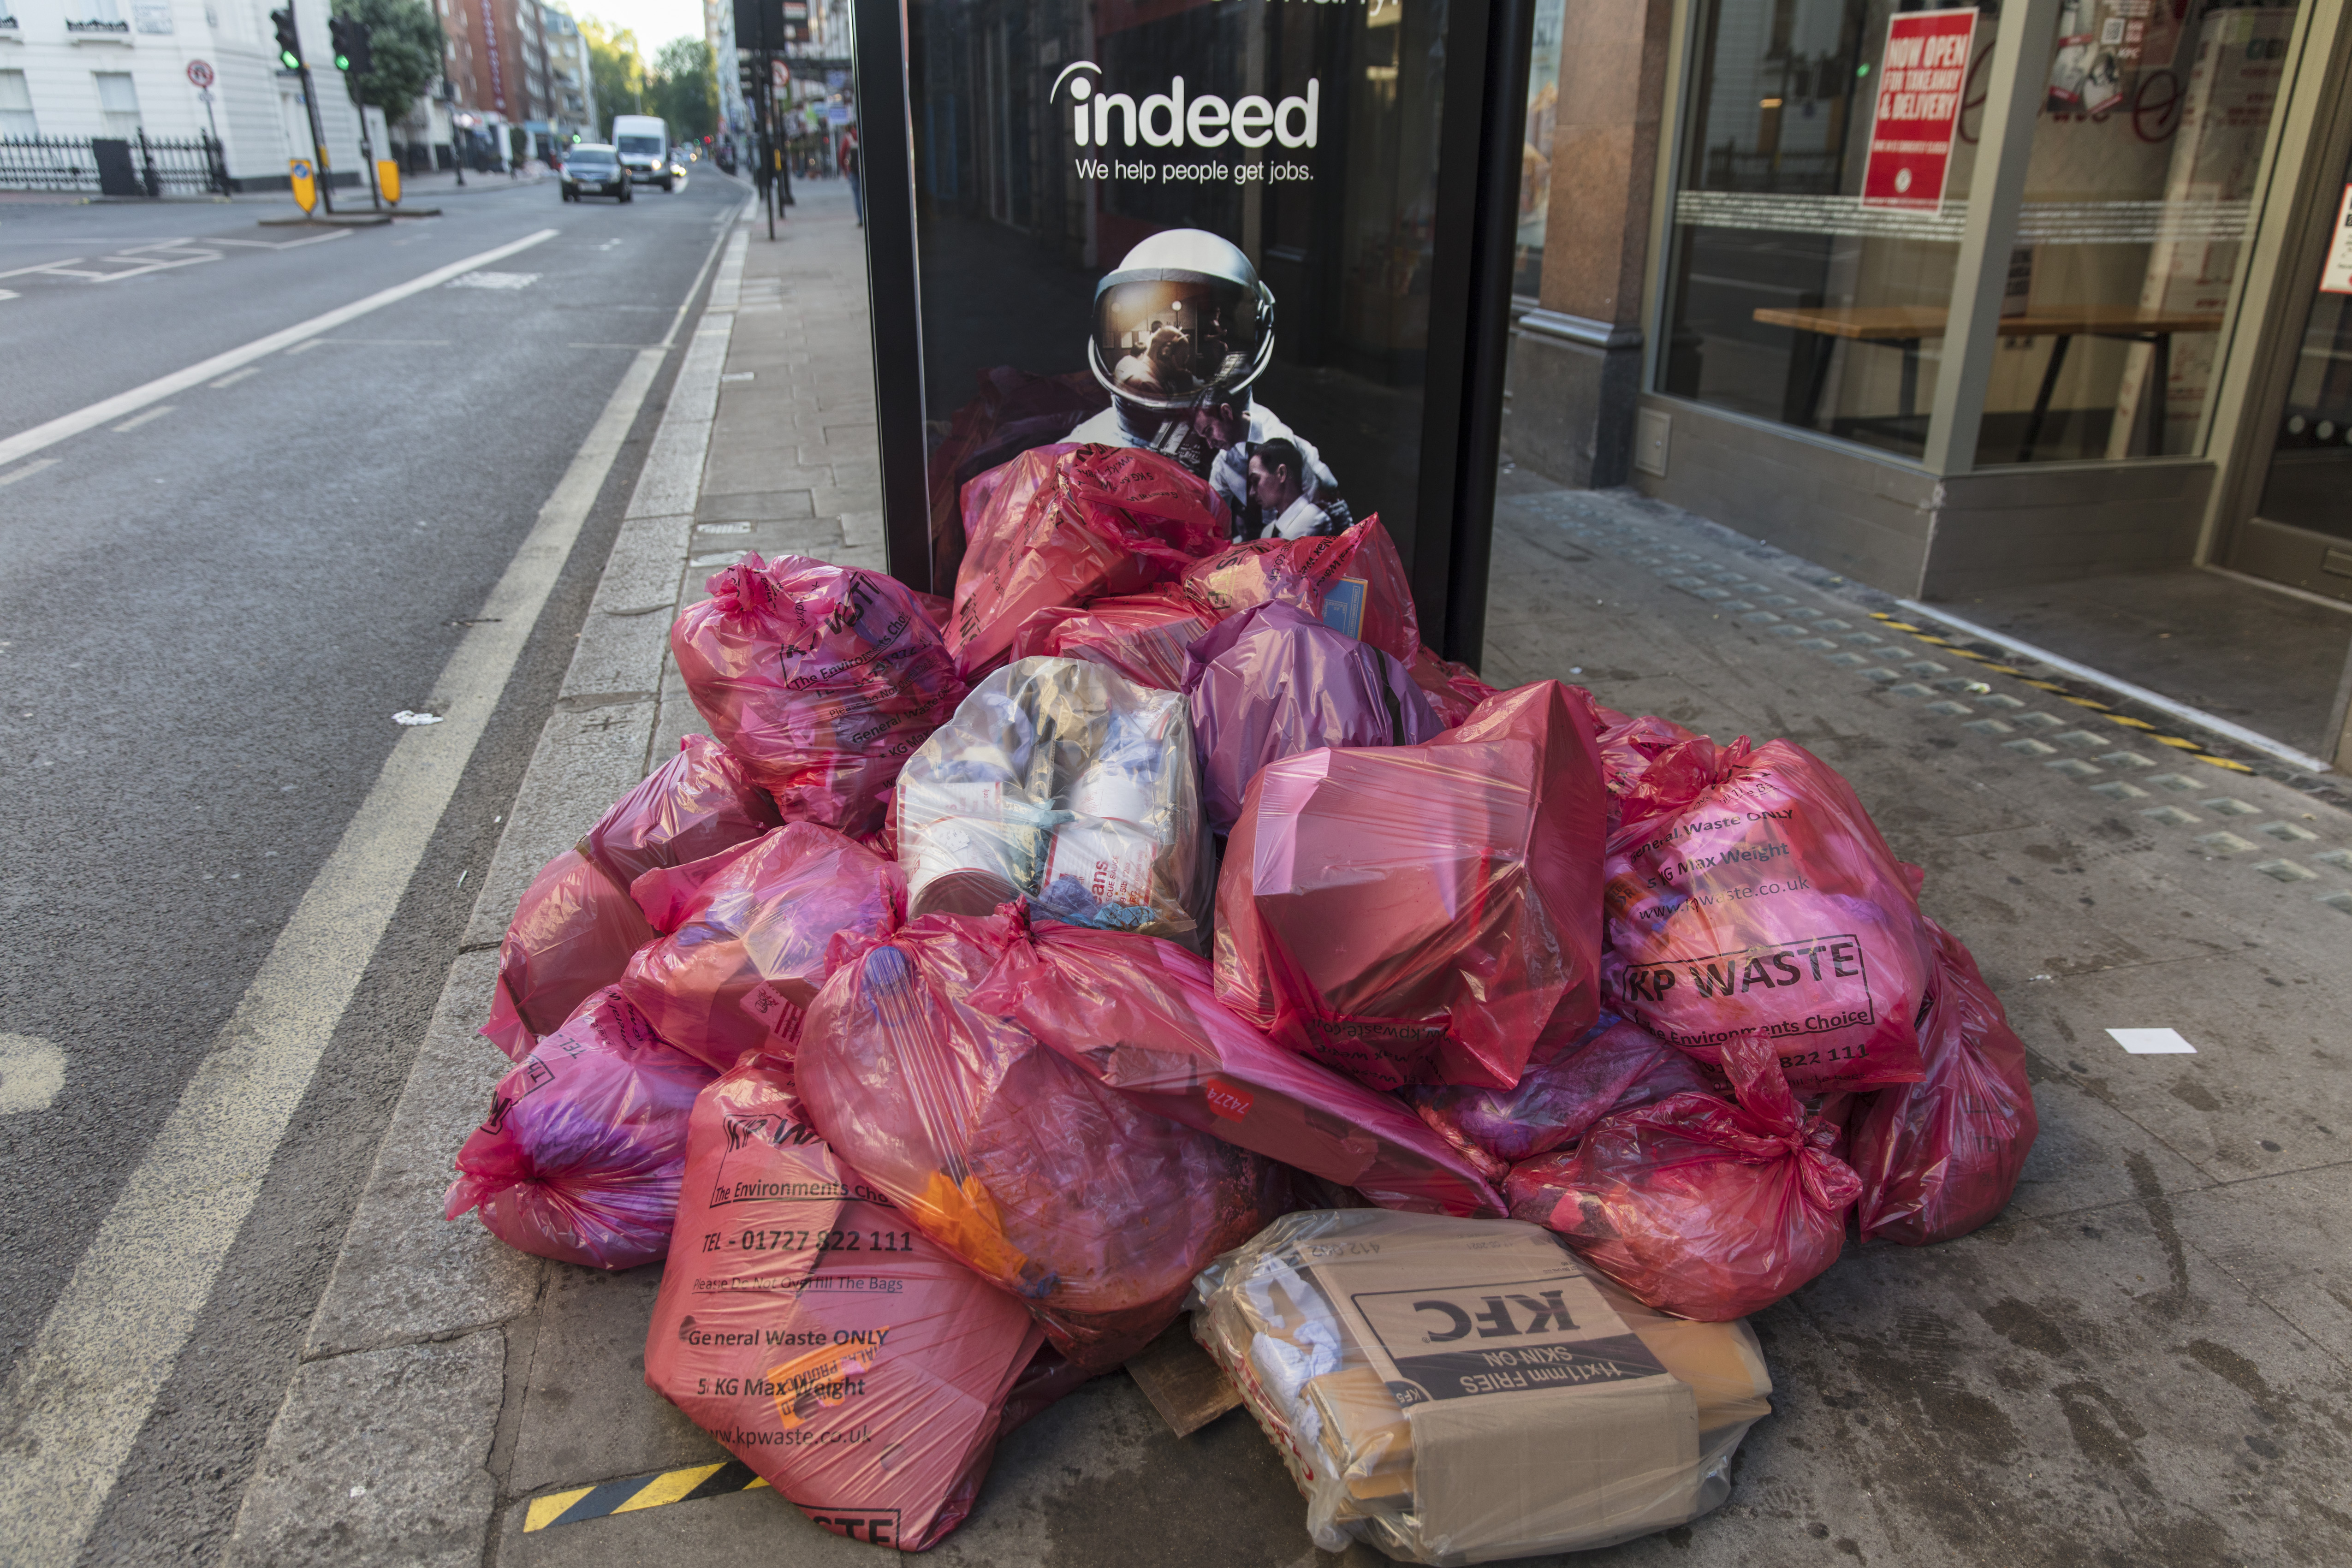 Rubbish left by a bus stop at the end of lockdown on 15th June in Southampton Row, London, United Kingdom.  (photo by Barry Lewis/InPictures via Getty Images)